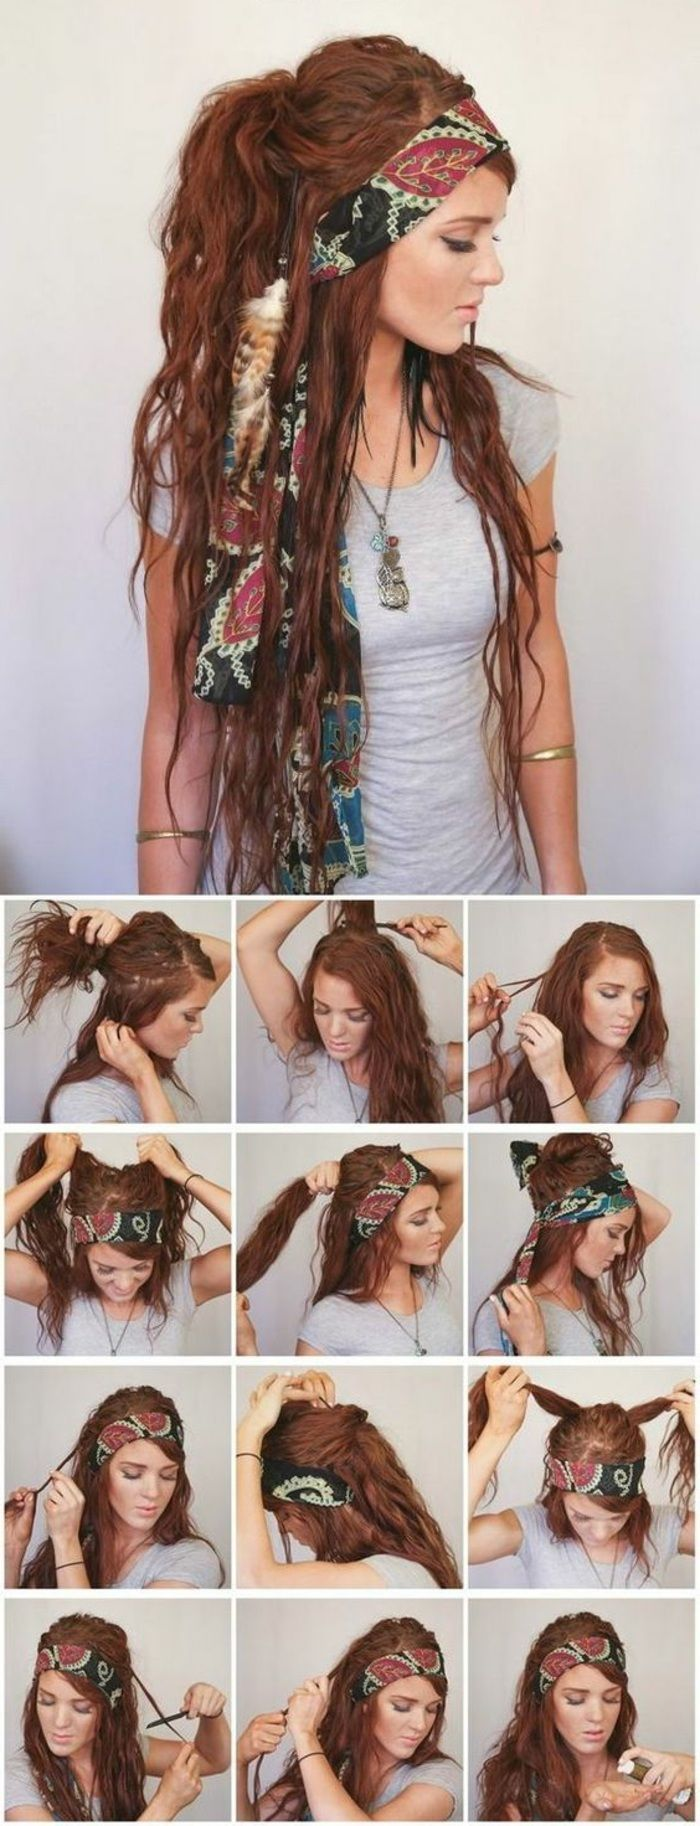 long, red hair, gray blouse, necklace, grunge hairstyle – Hairstyles for long hair – #Bluse #Hairstyles # for #Gray #GrungeHairstyle